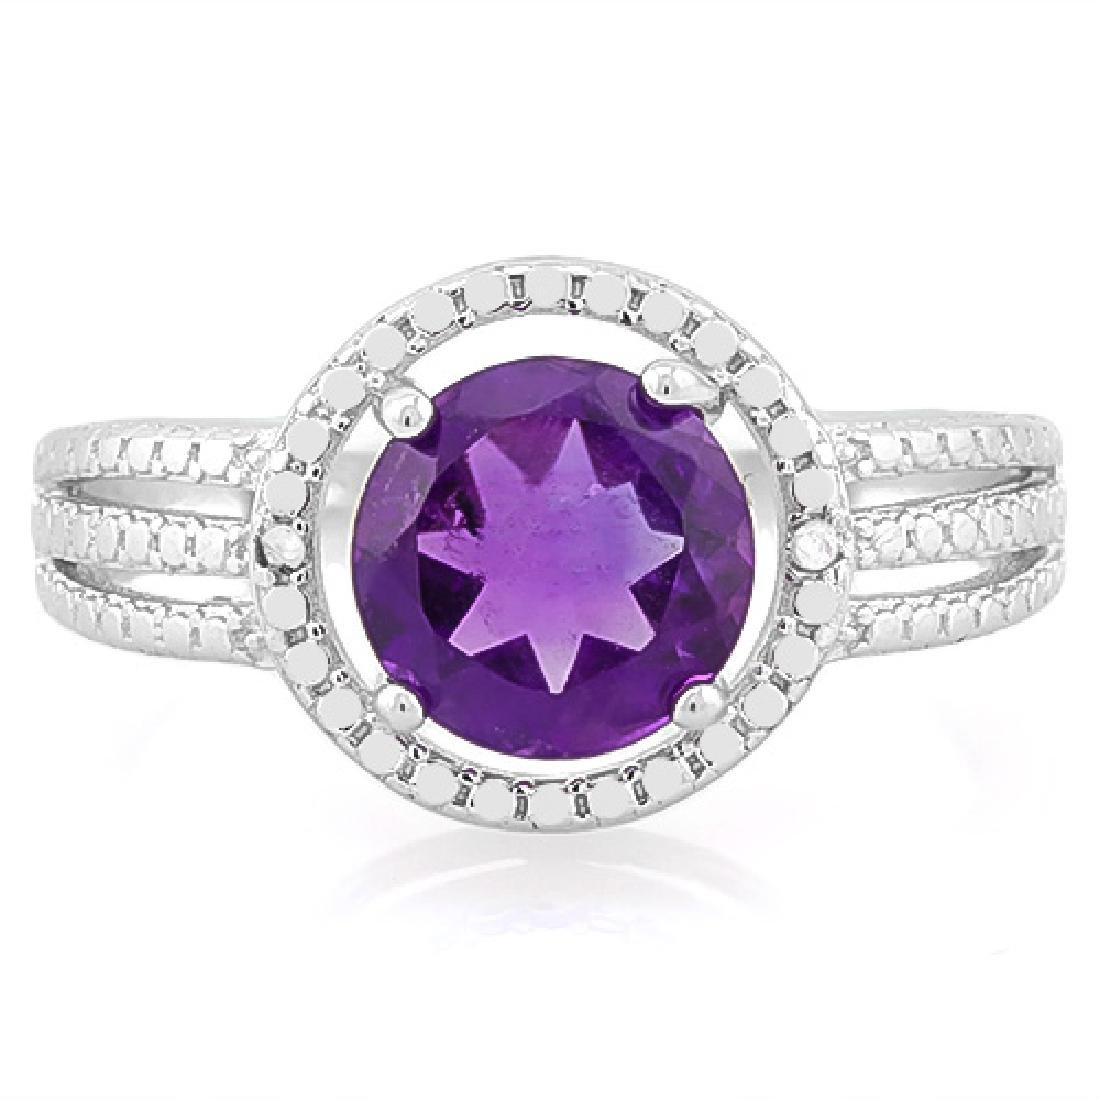 1 4/5 CARAT AMETHYST & DIAMOND 925 STERLING SILVER RING